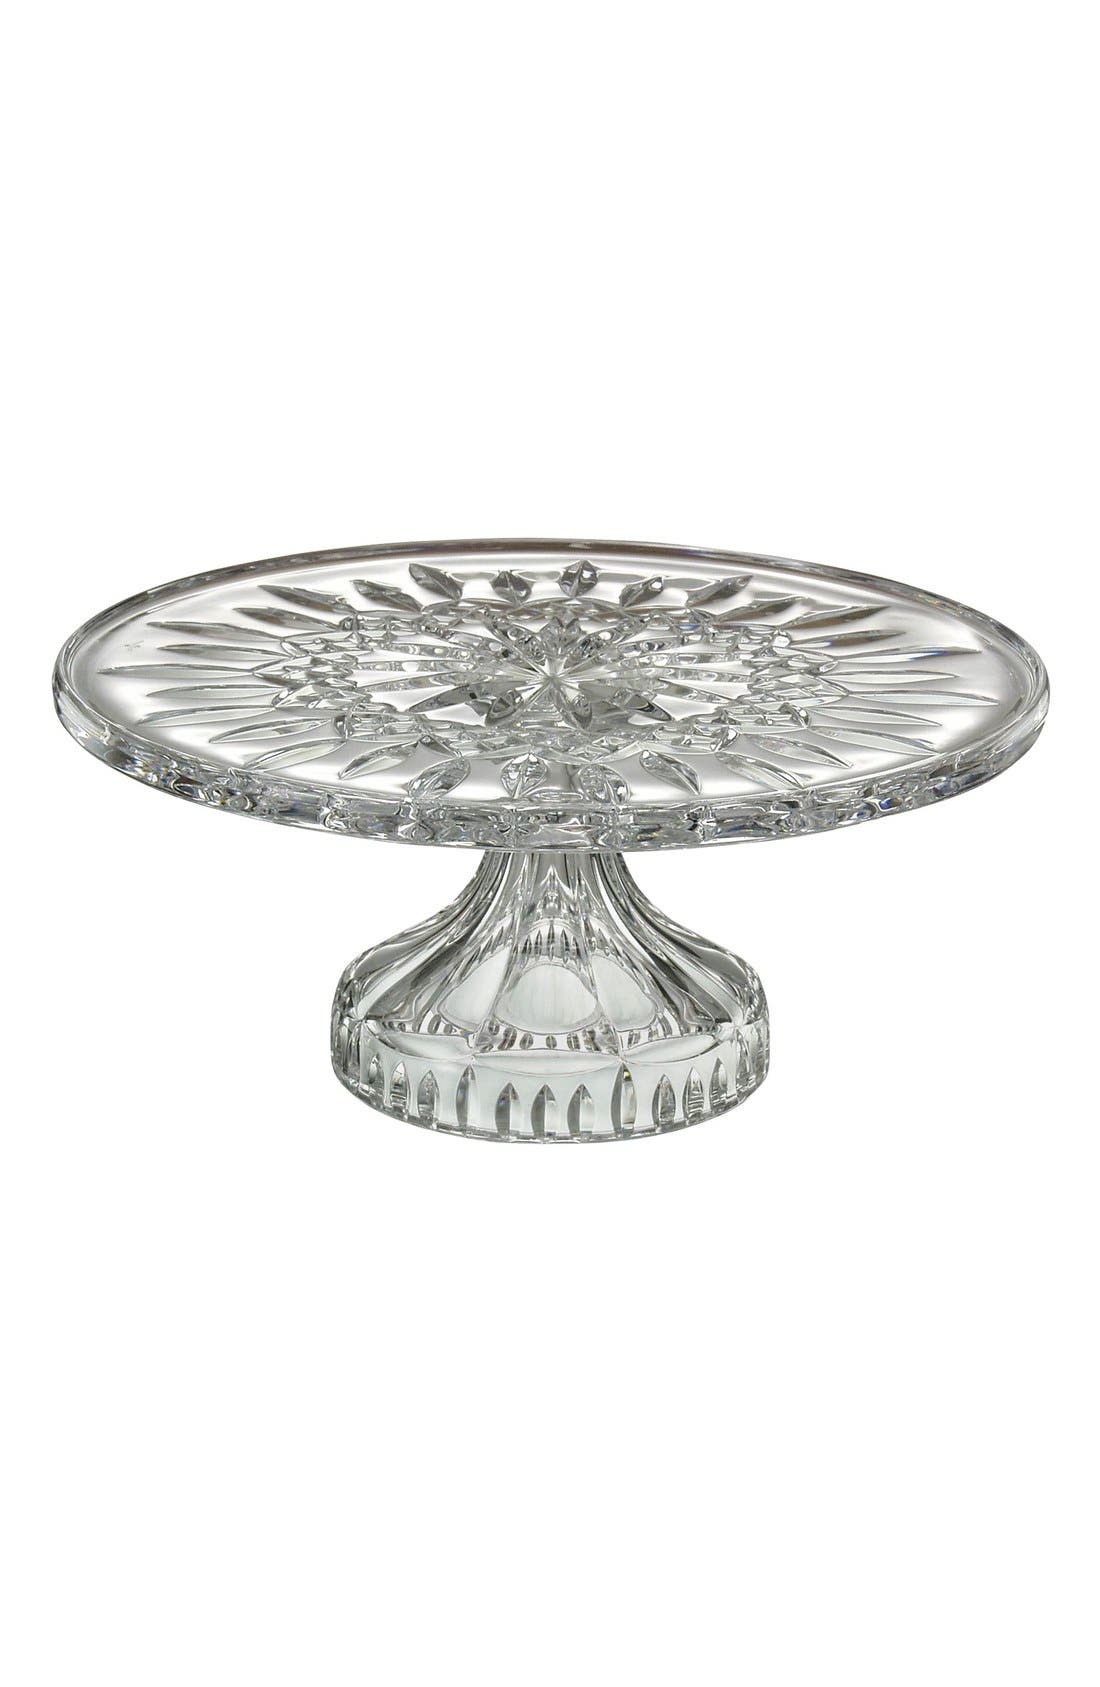 Main Image - Waterford 'Lismore' Lead Crystal Cake Stand